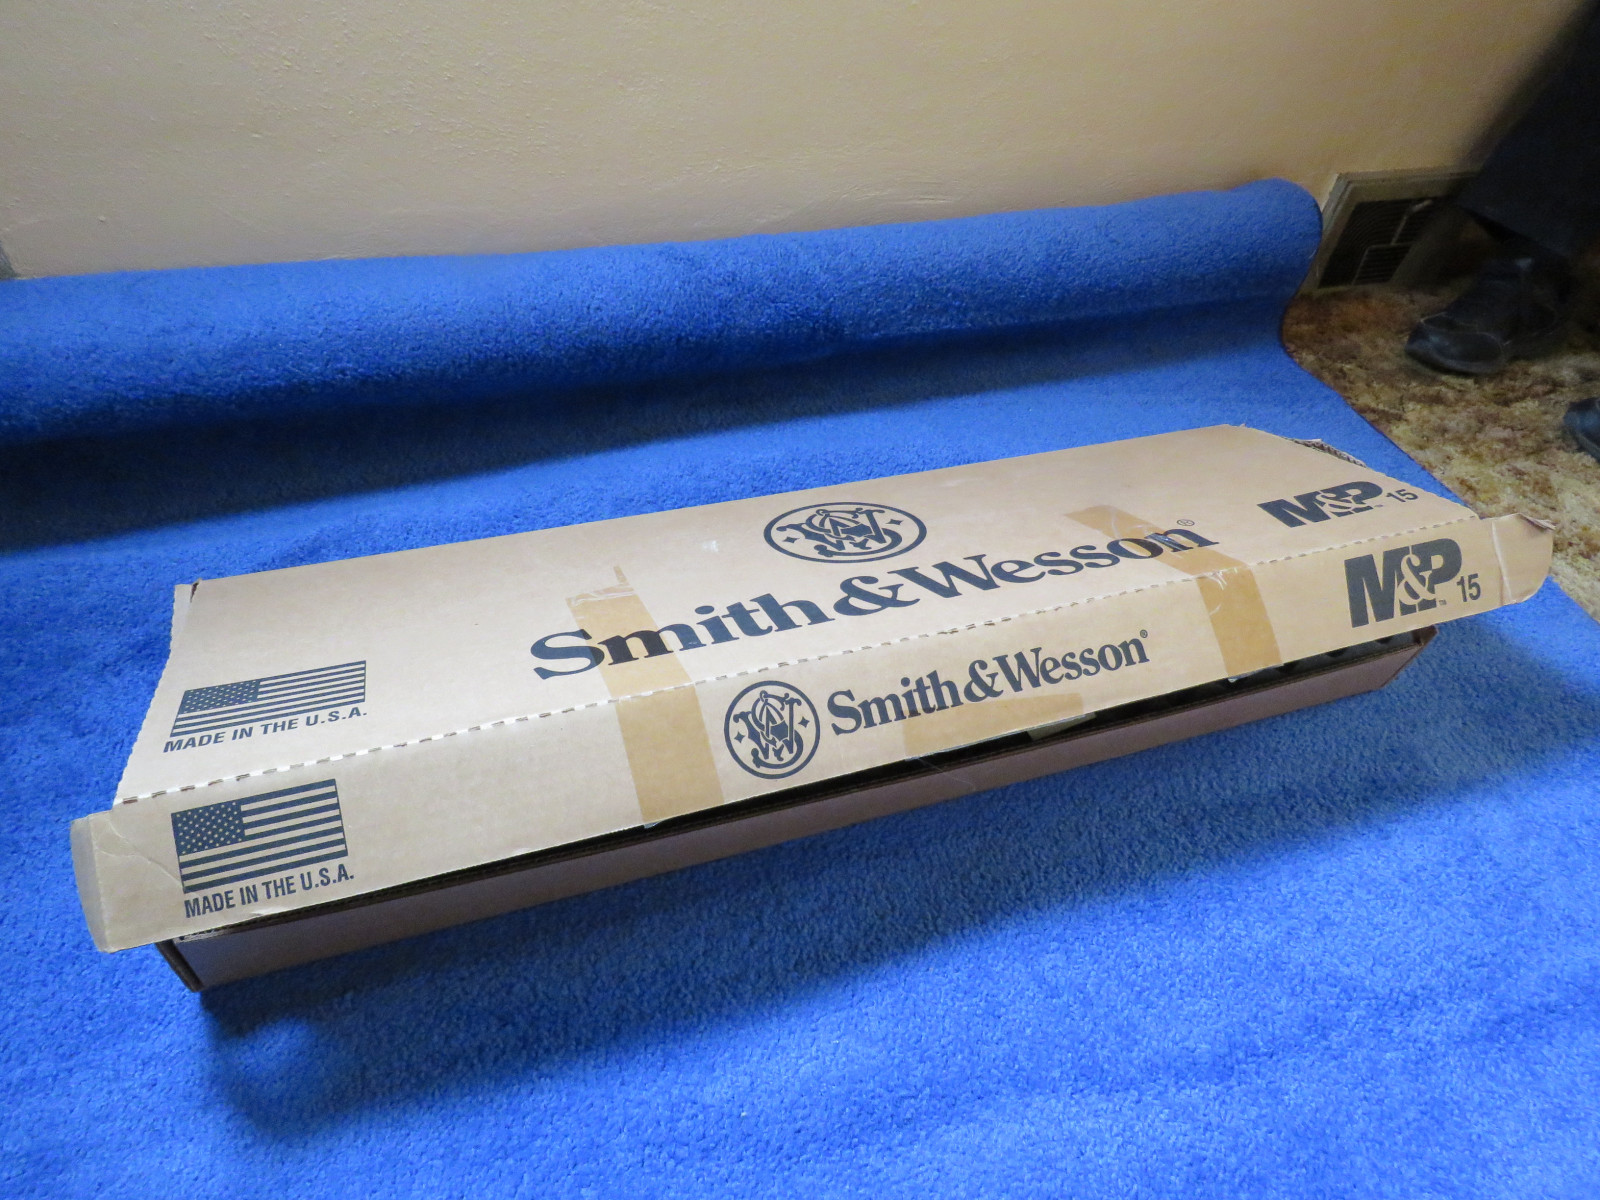 Smith & Wesson M&P15 Centerfire Rifle NIB NF - Image 4